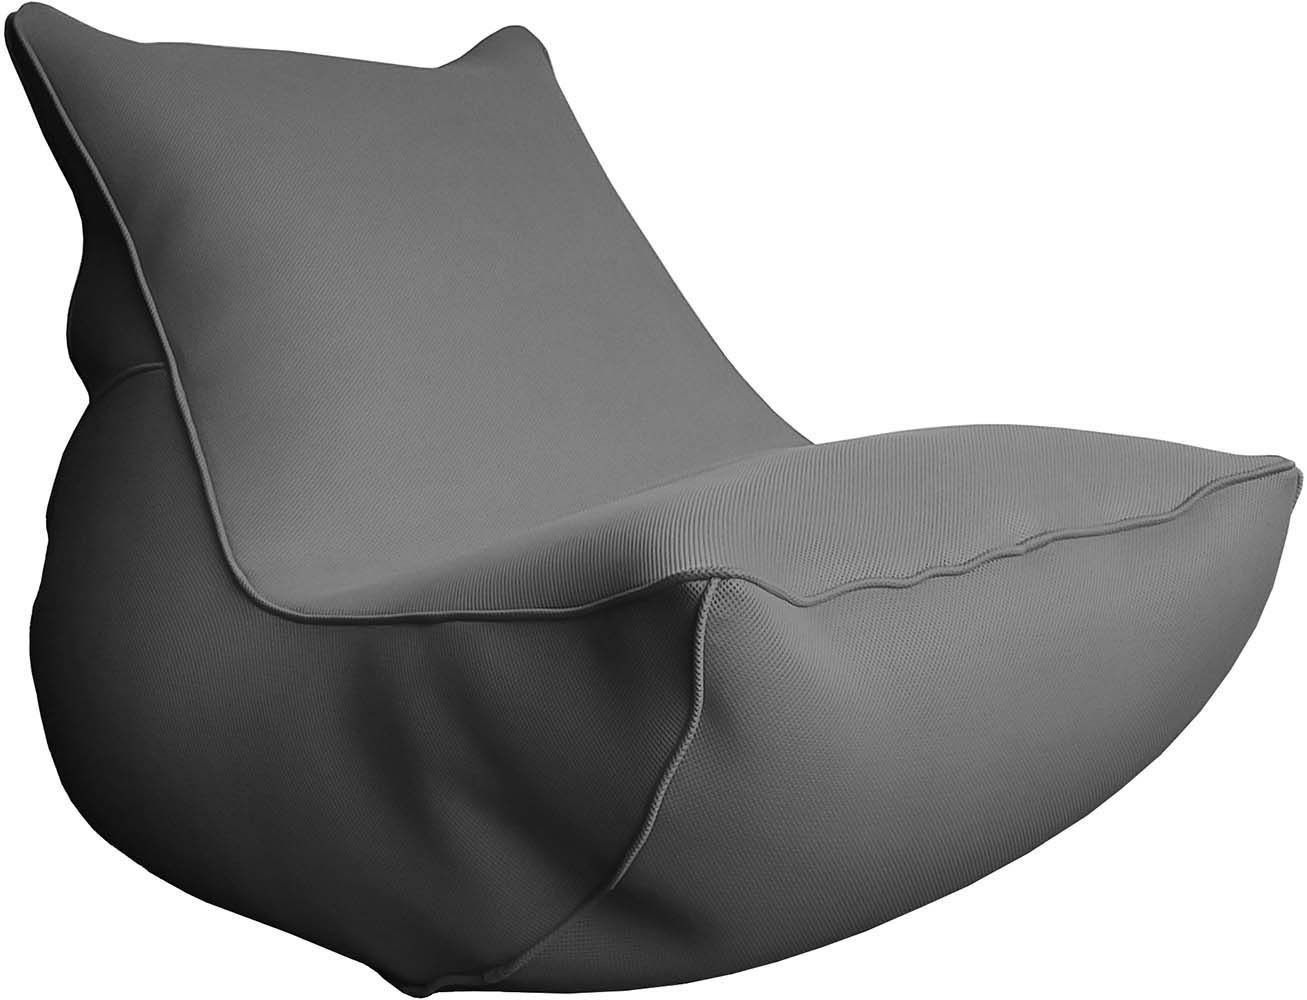 Fauteuil lounge big bag de piscine anthracite